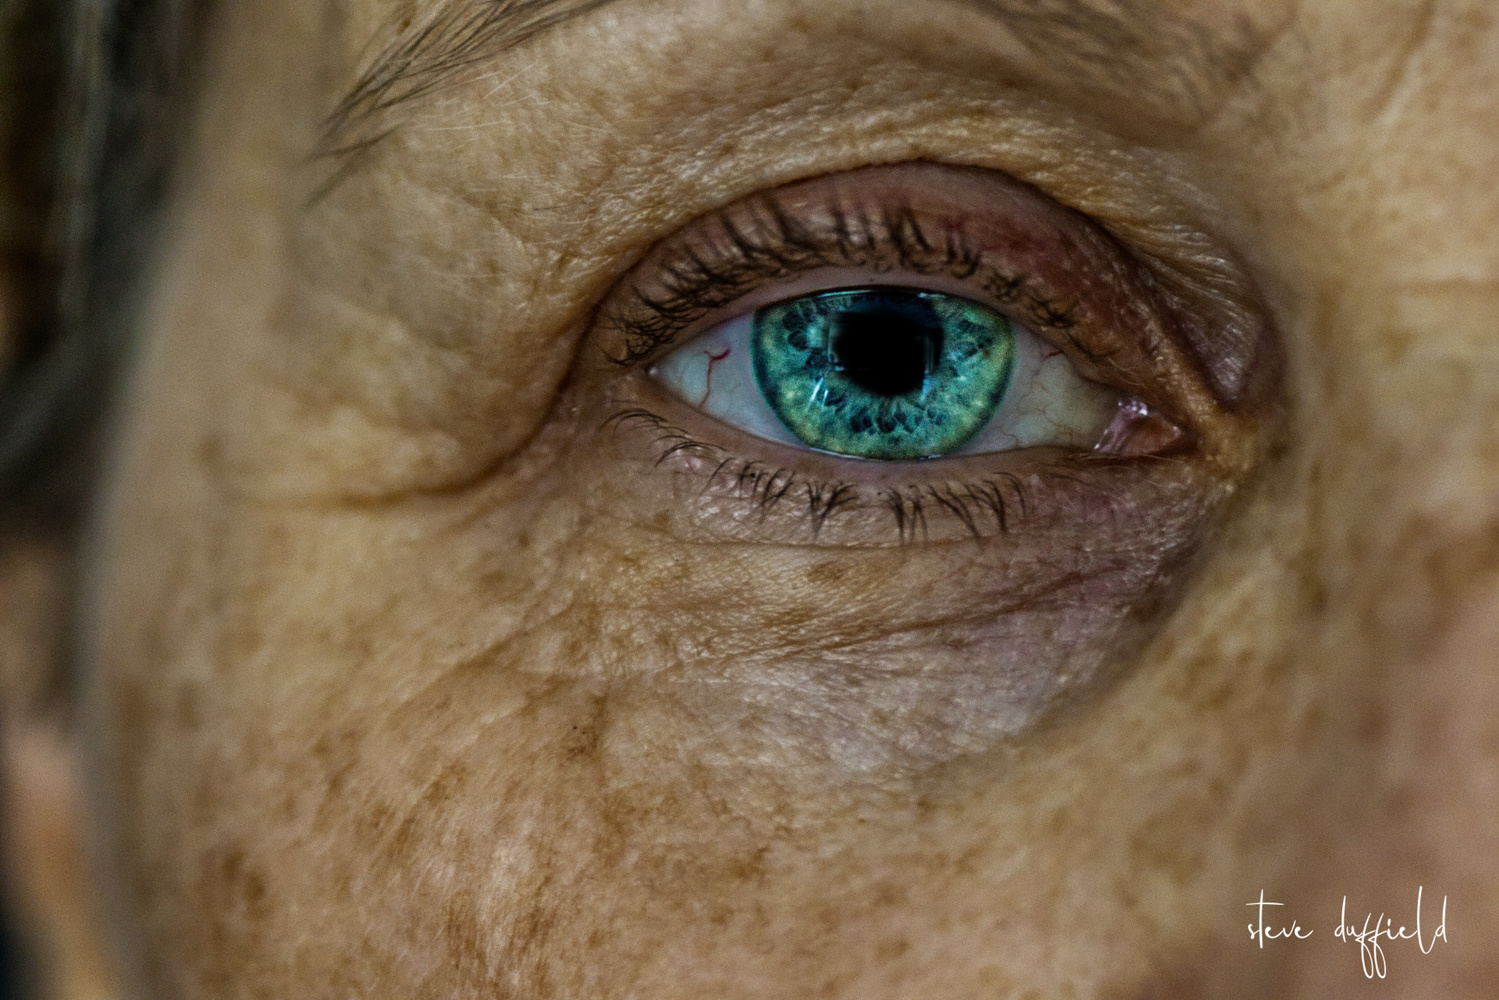 window to the soul by stephen duffield